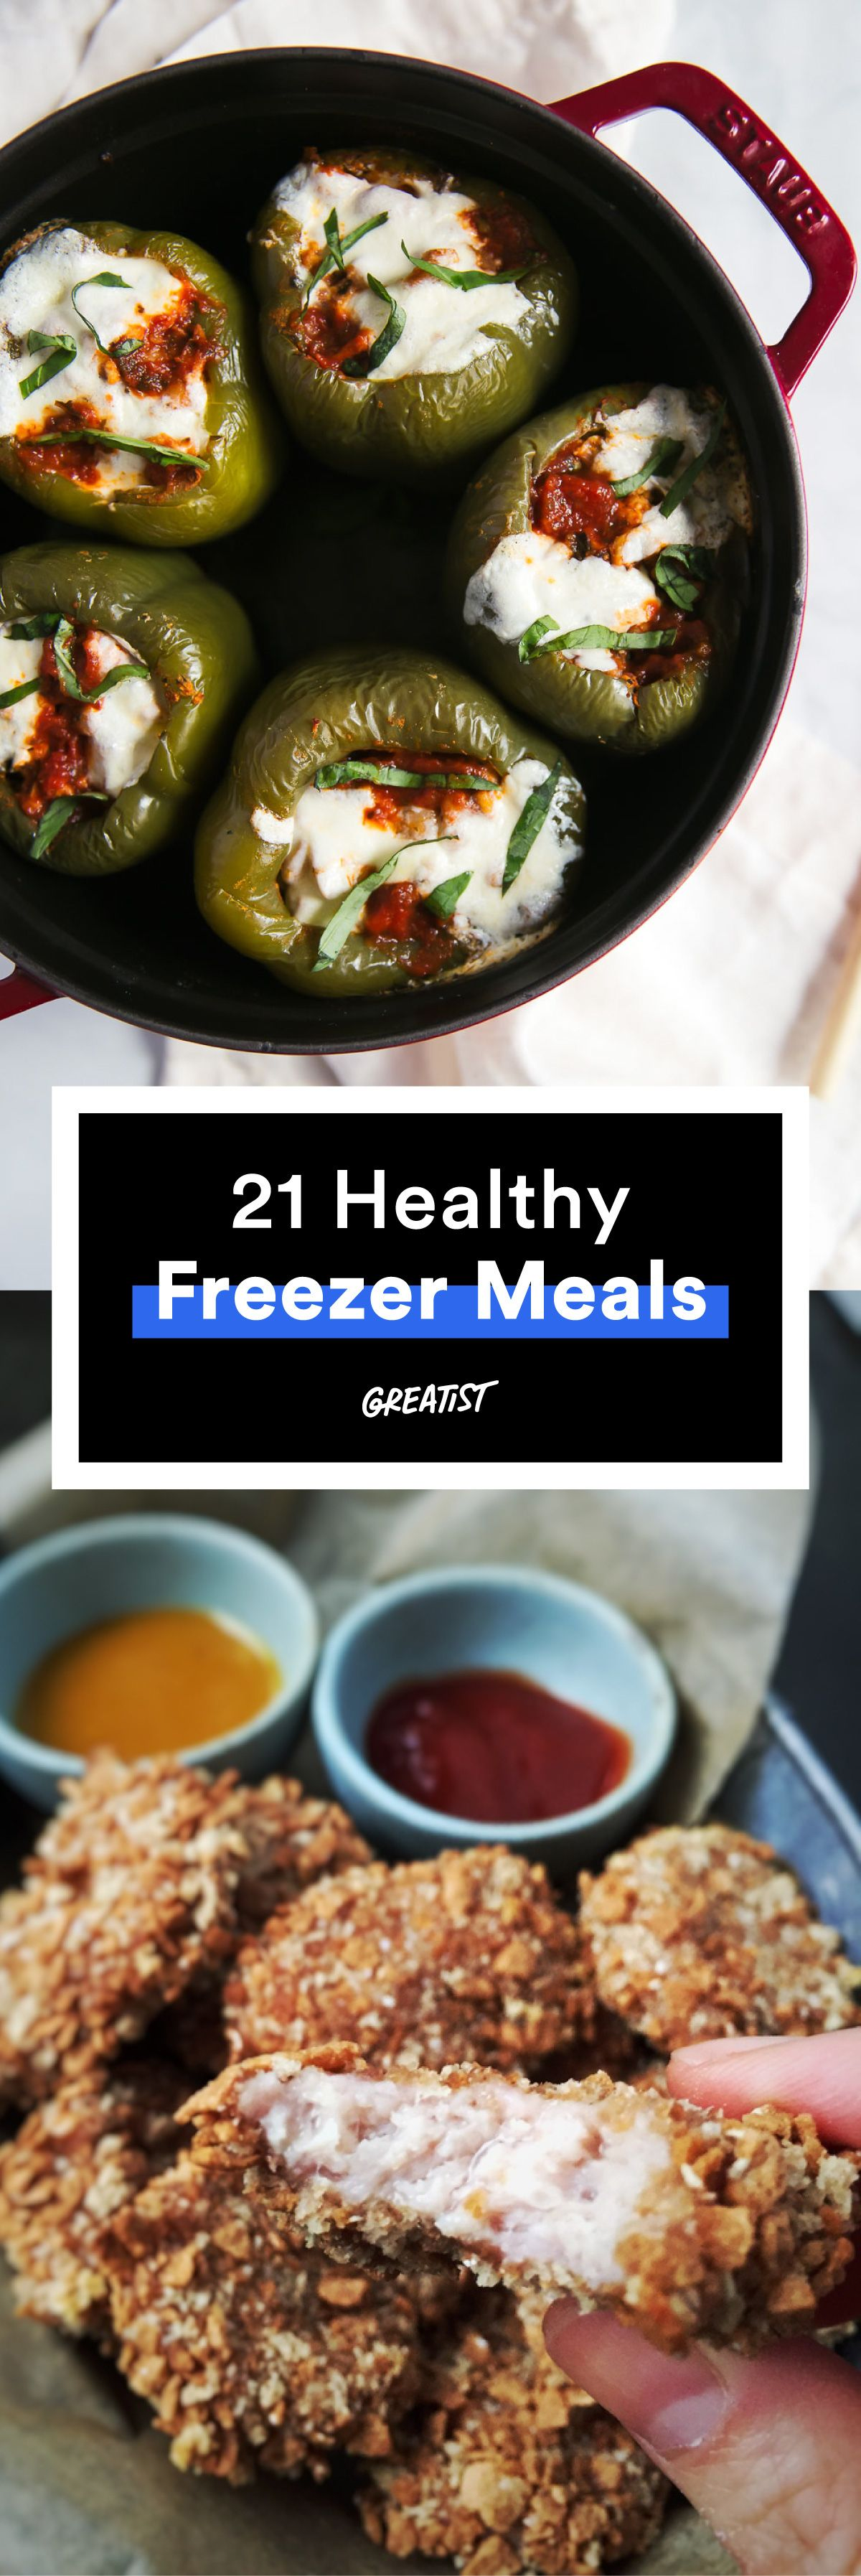 All you have to do is reheat and eat. #freezermeals #frozenfood…